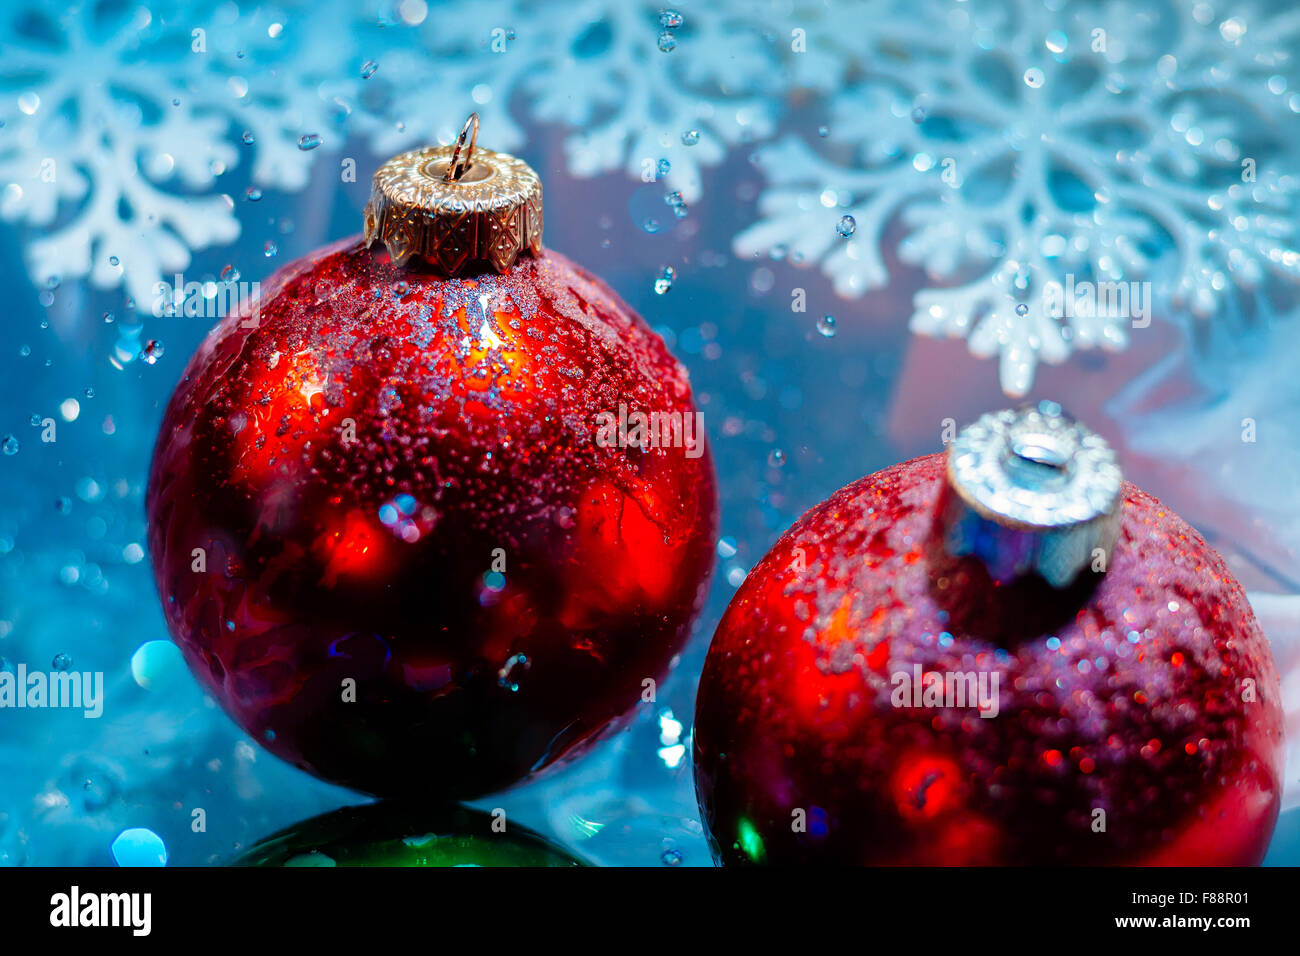 fancy new year frozen balls with ice water drops bokeh on snowflakes winter background wallpaper